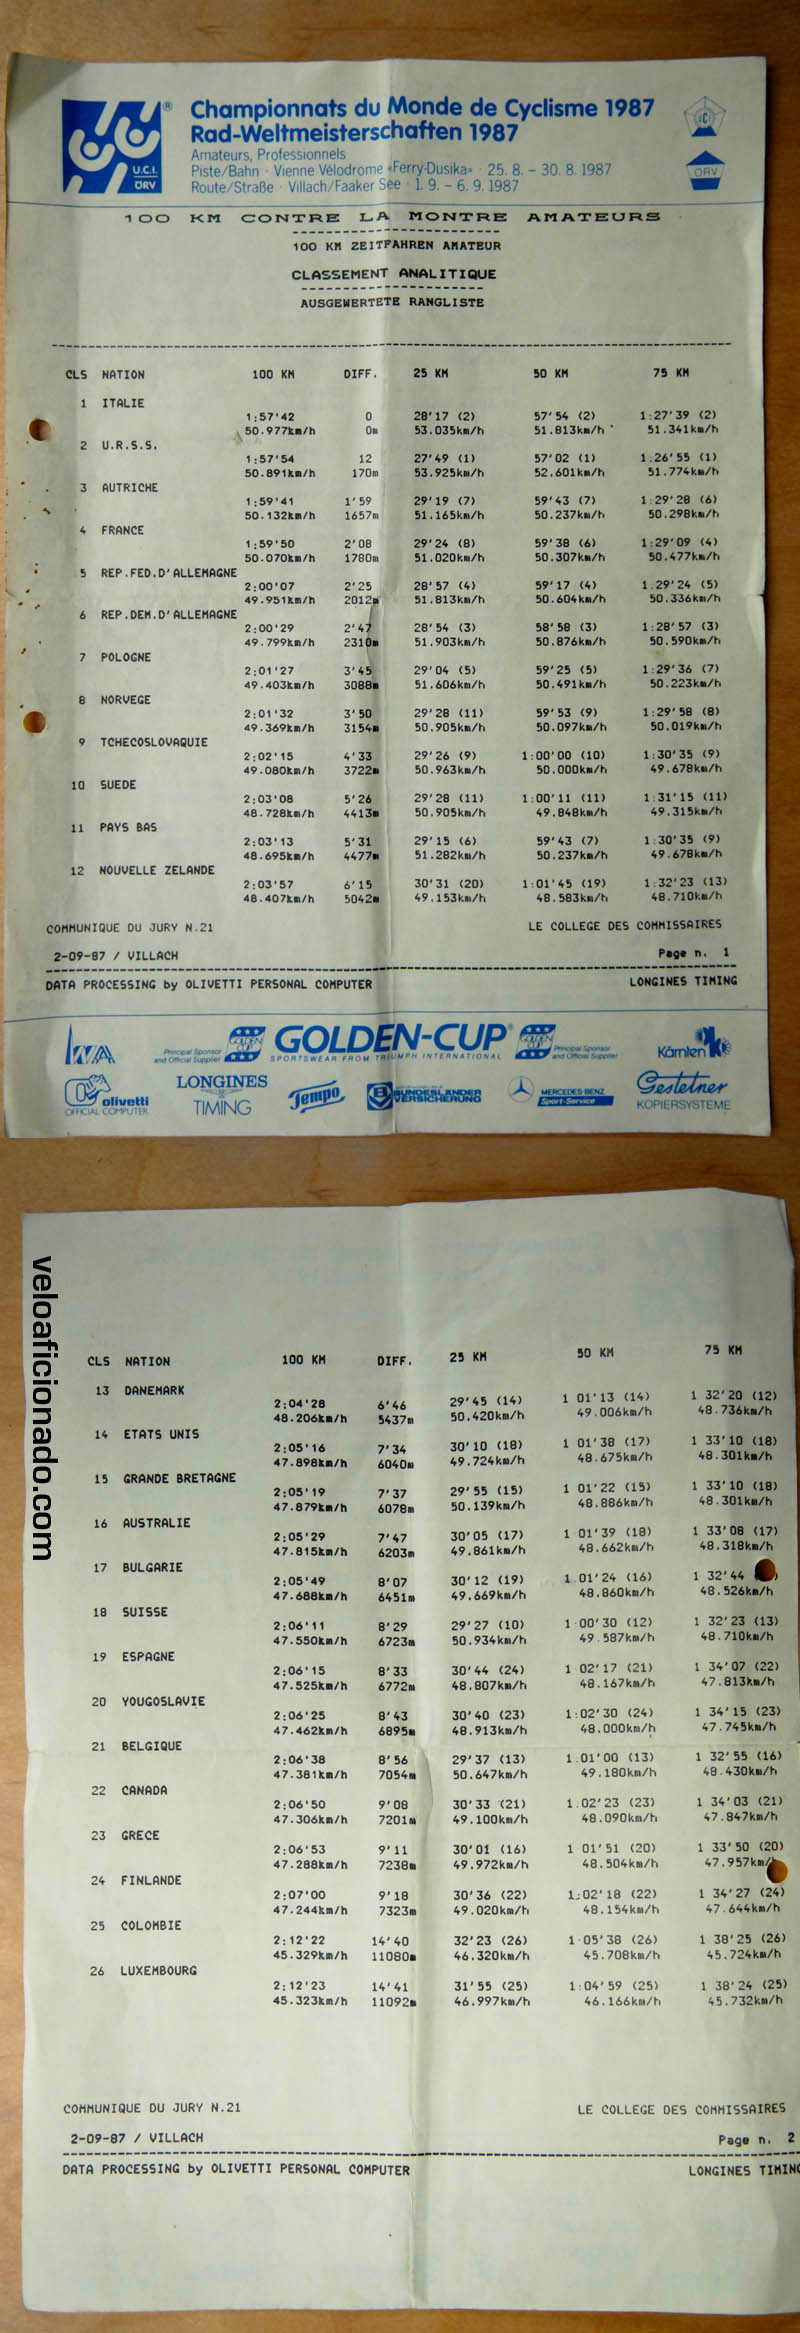 1987 UCI world cycling championships time sheet for the 100km teams time trial event